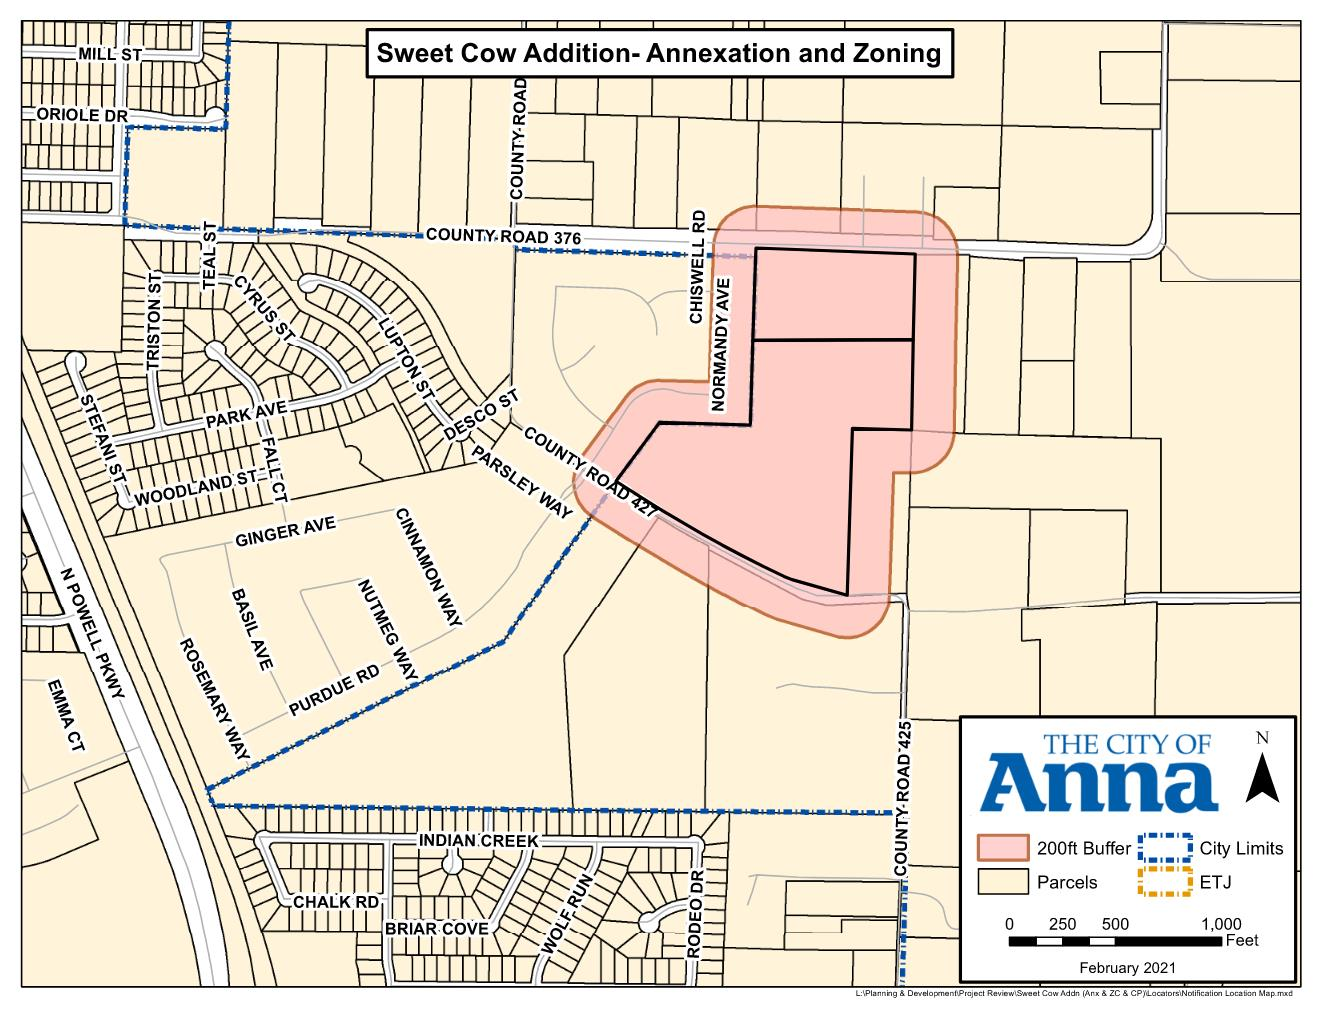 Map of Annexation location of Sweet Cow Addition